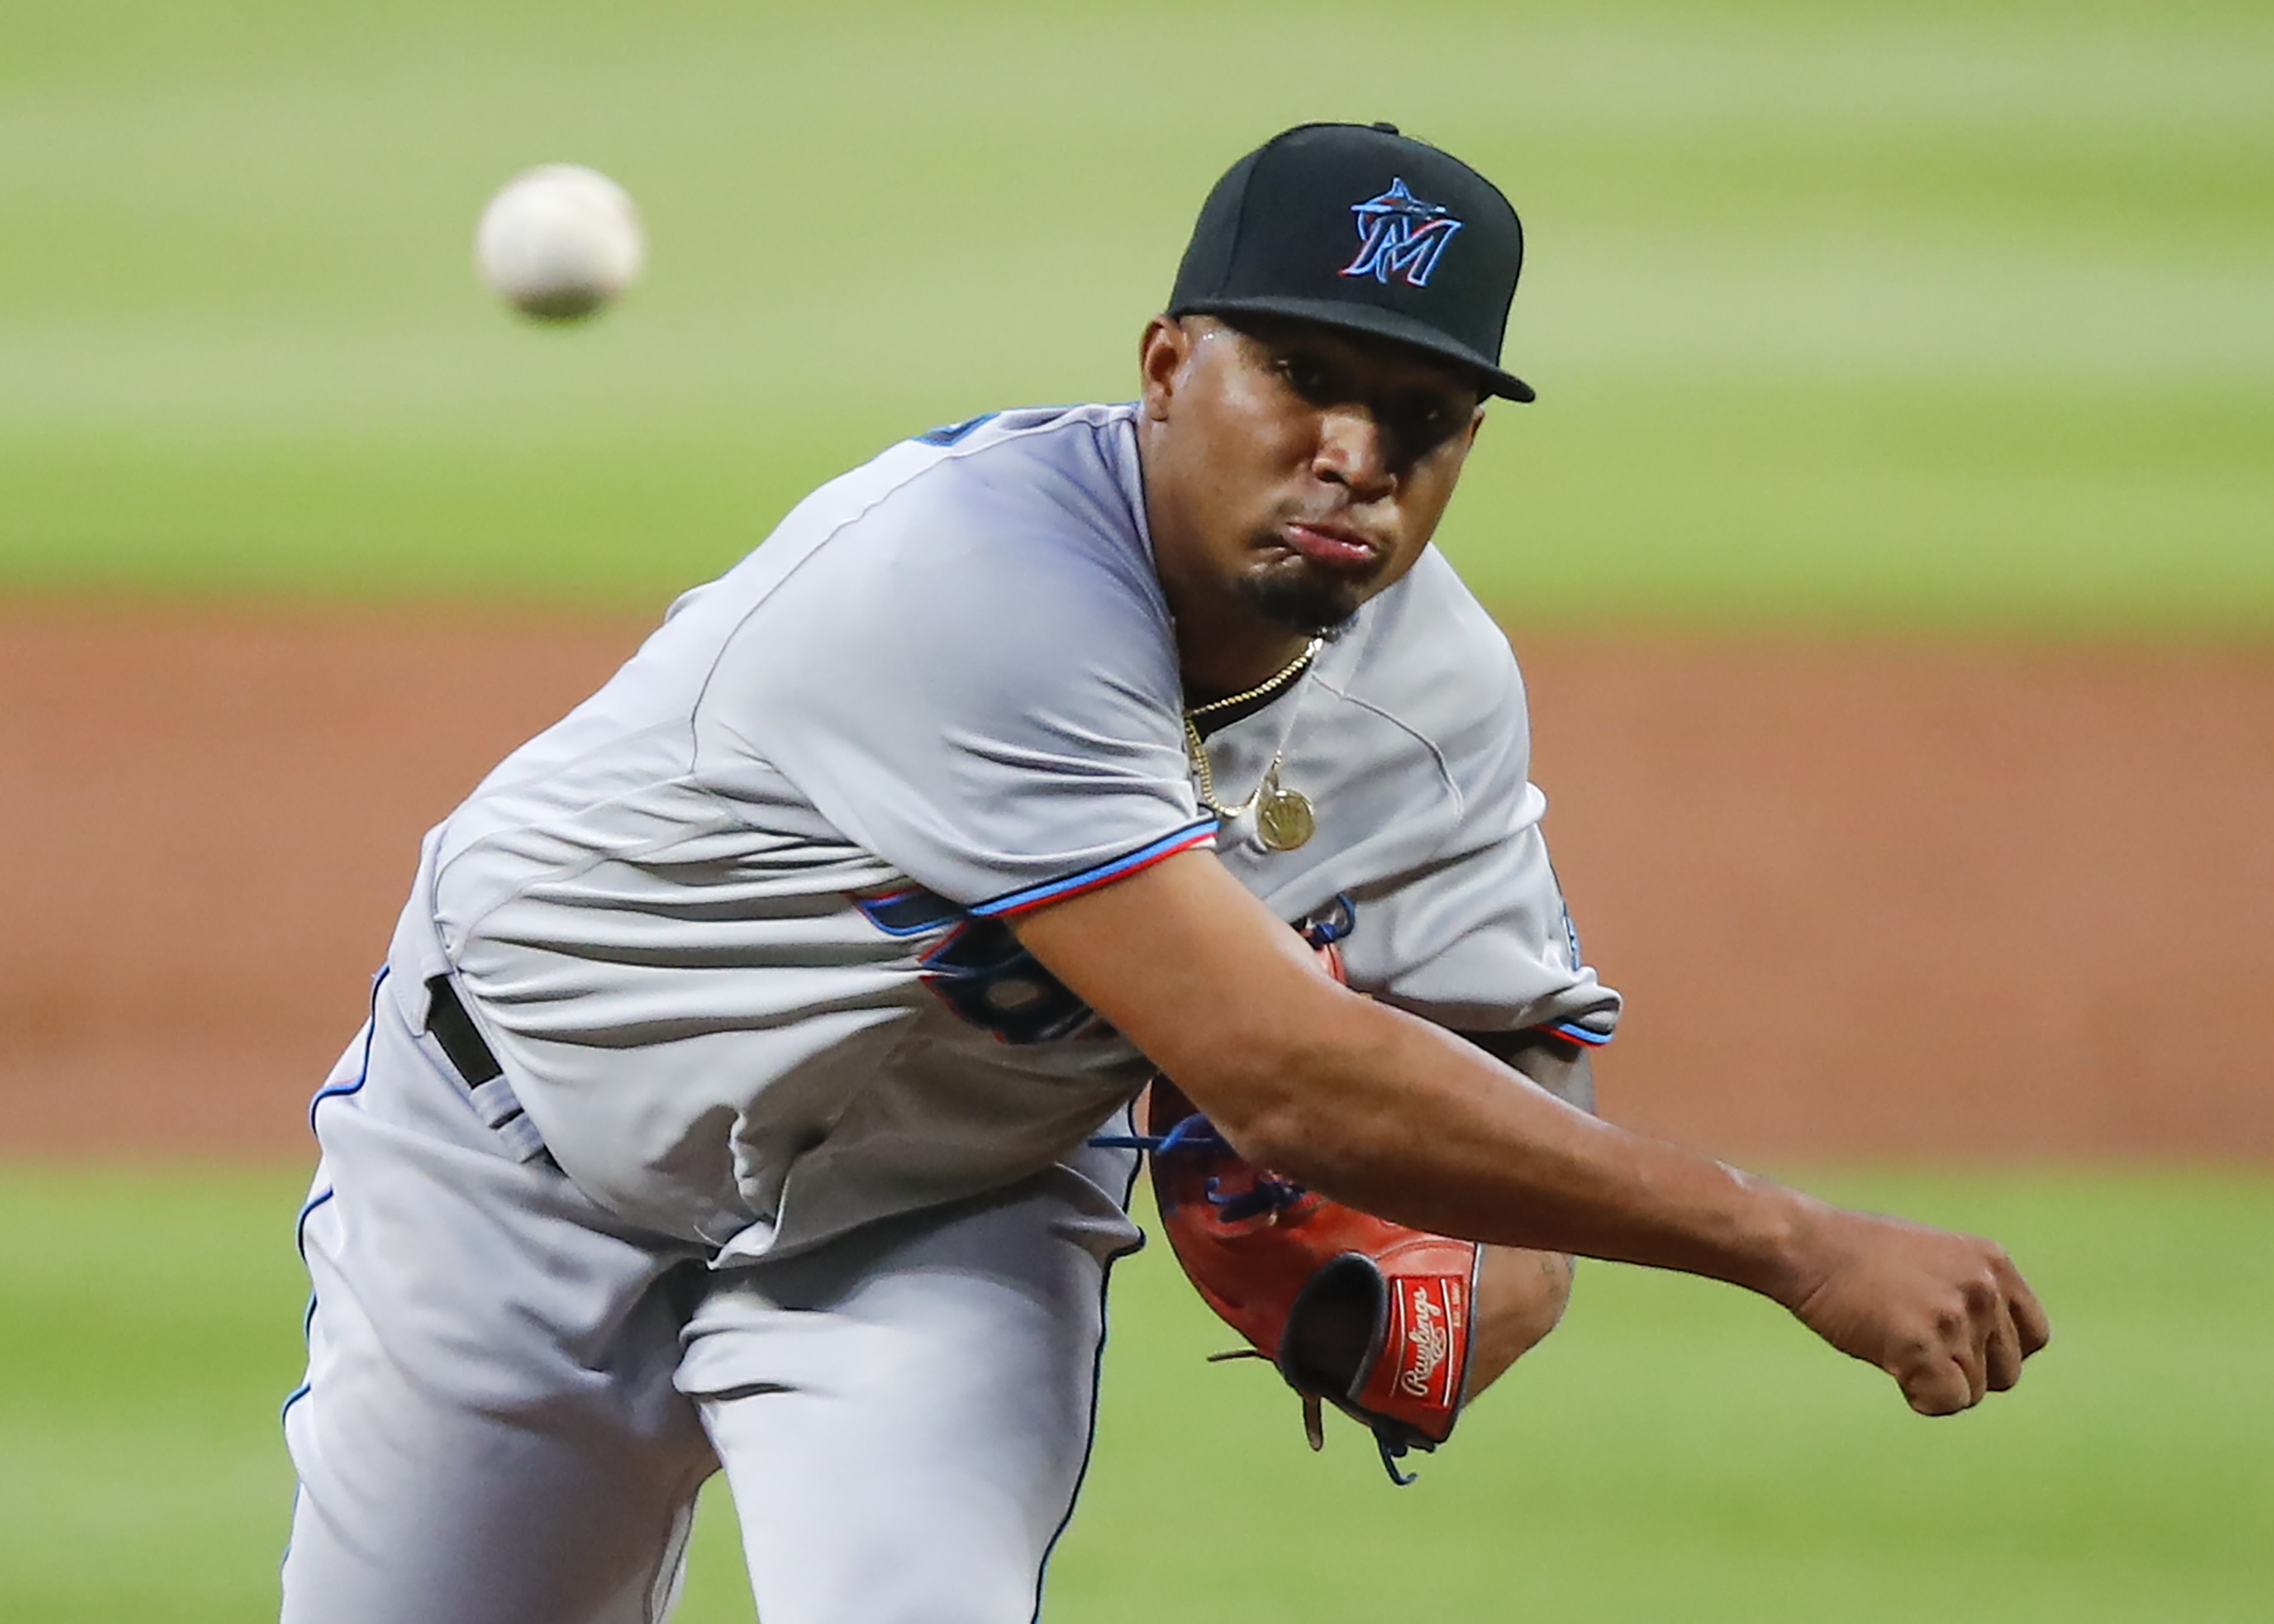 Sixto Sanchez #73 of the Miami Marlins pitches in the first inning of an MLB game against the Atlanta Braves at Truist Park